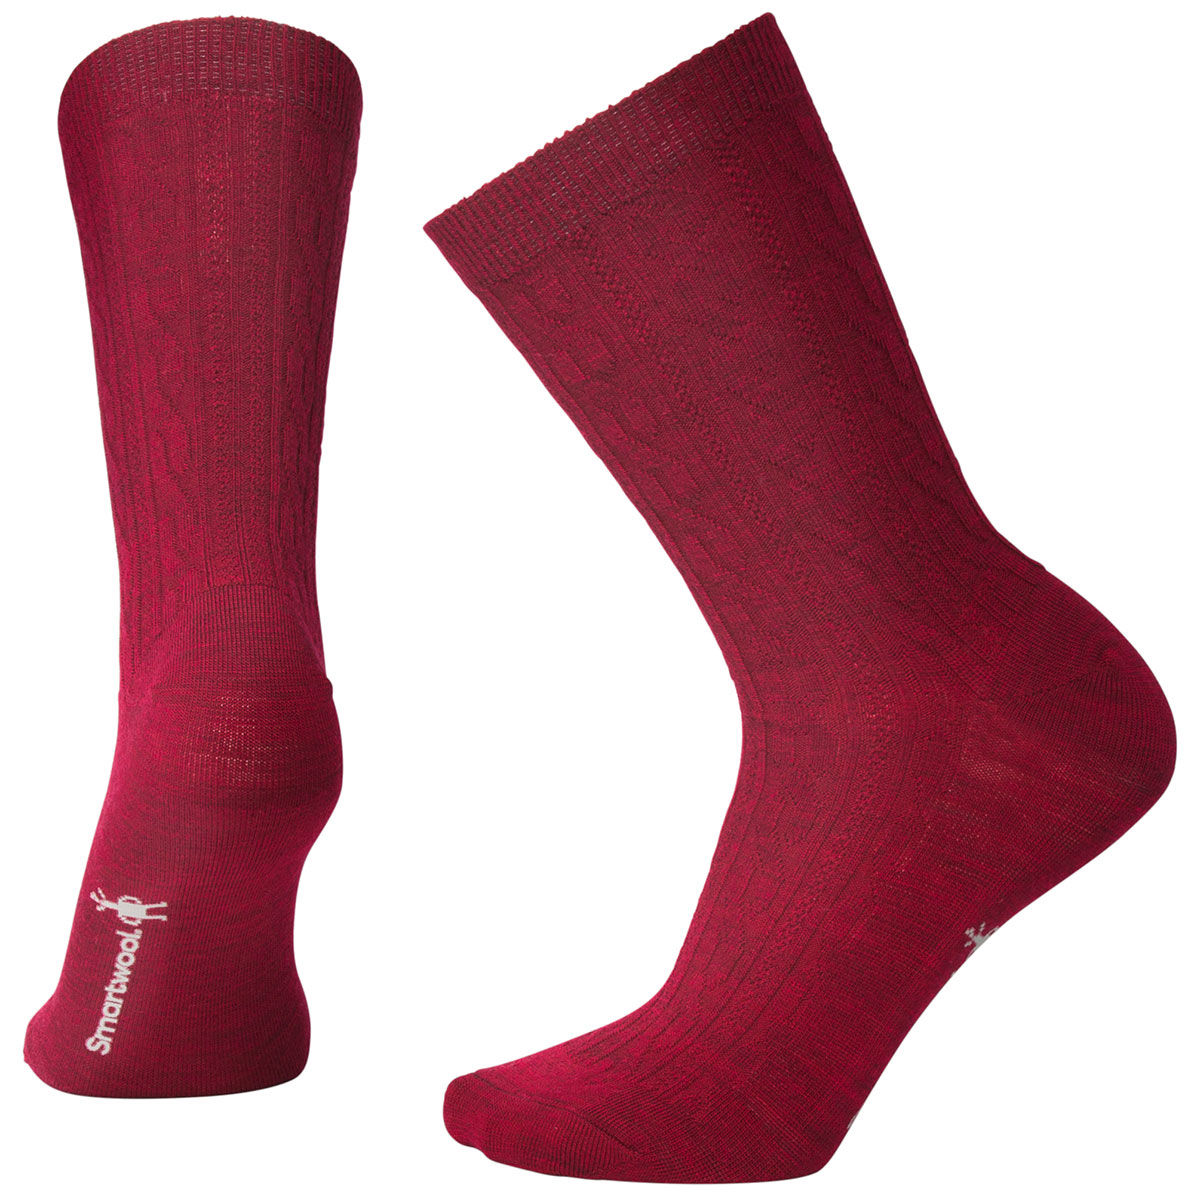 Smartwool Women's Cable Ii Crew Socks - Red, S